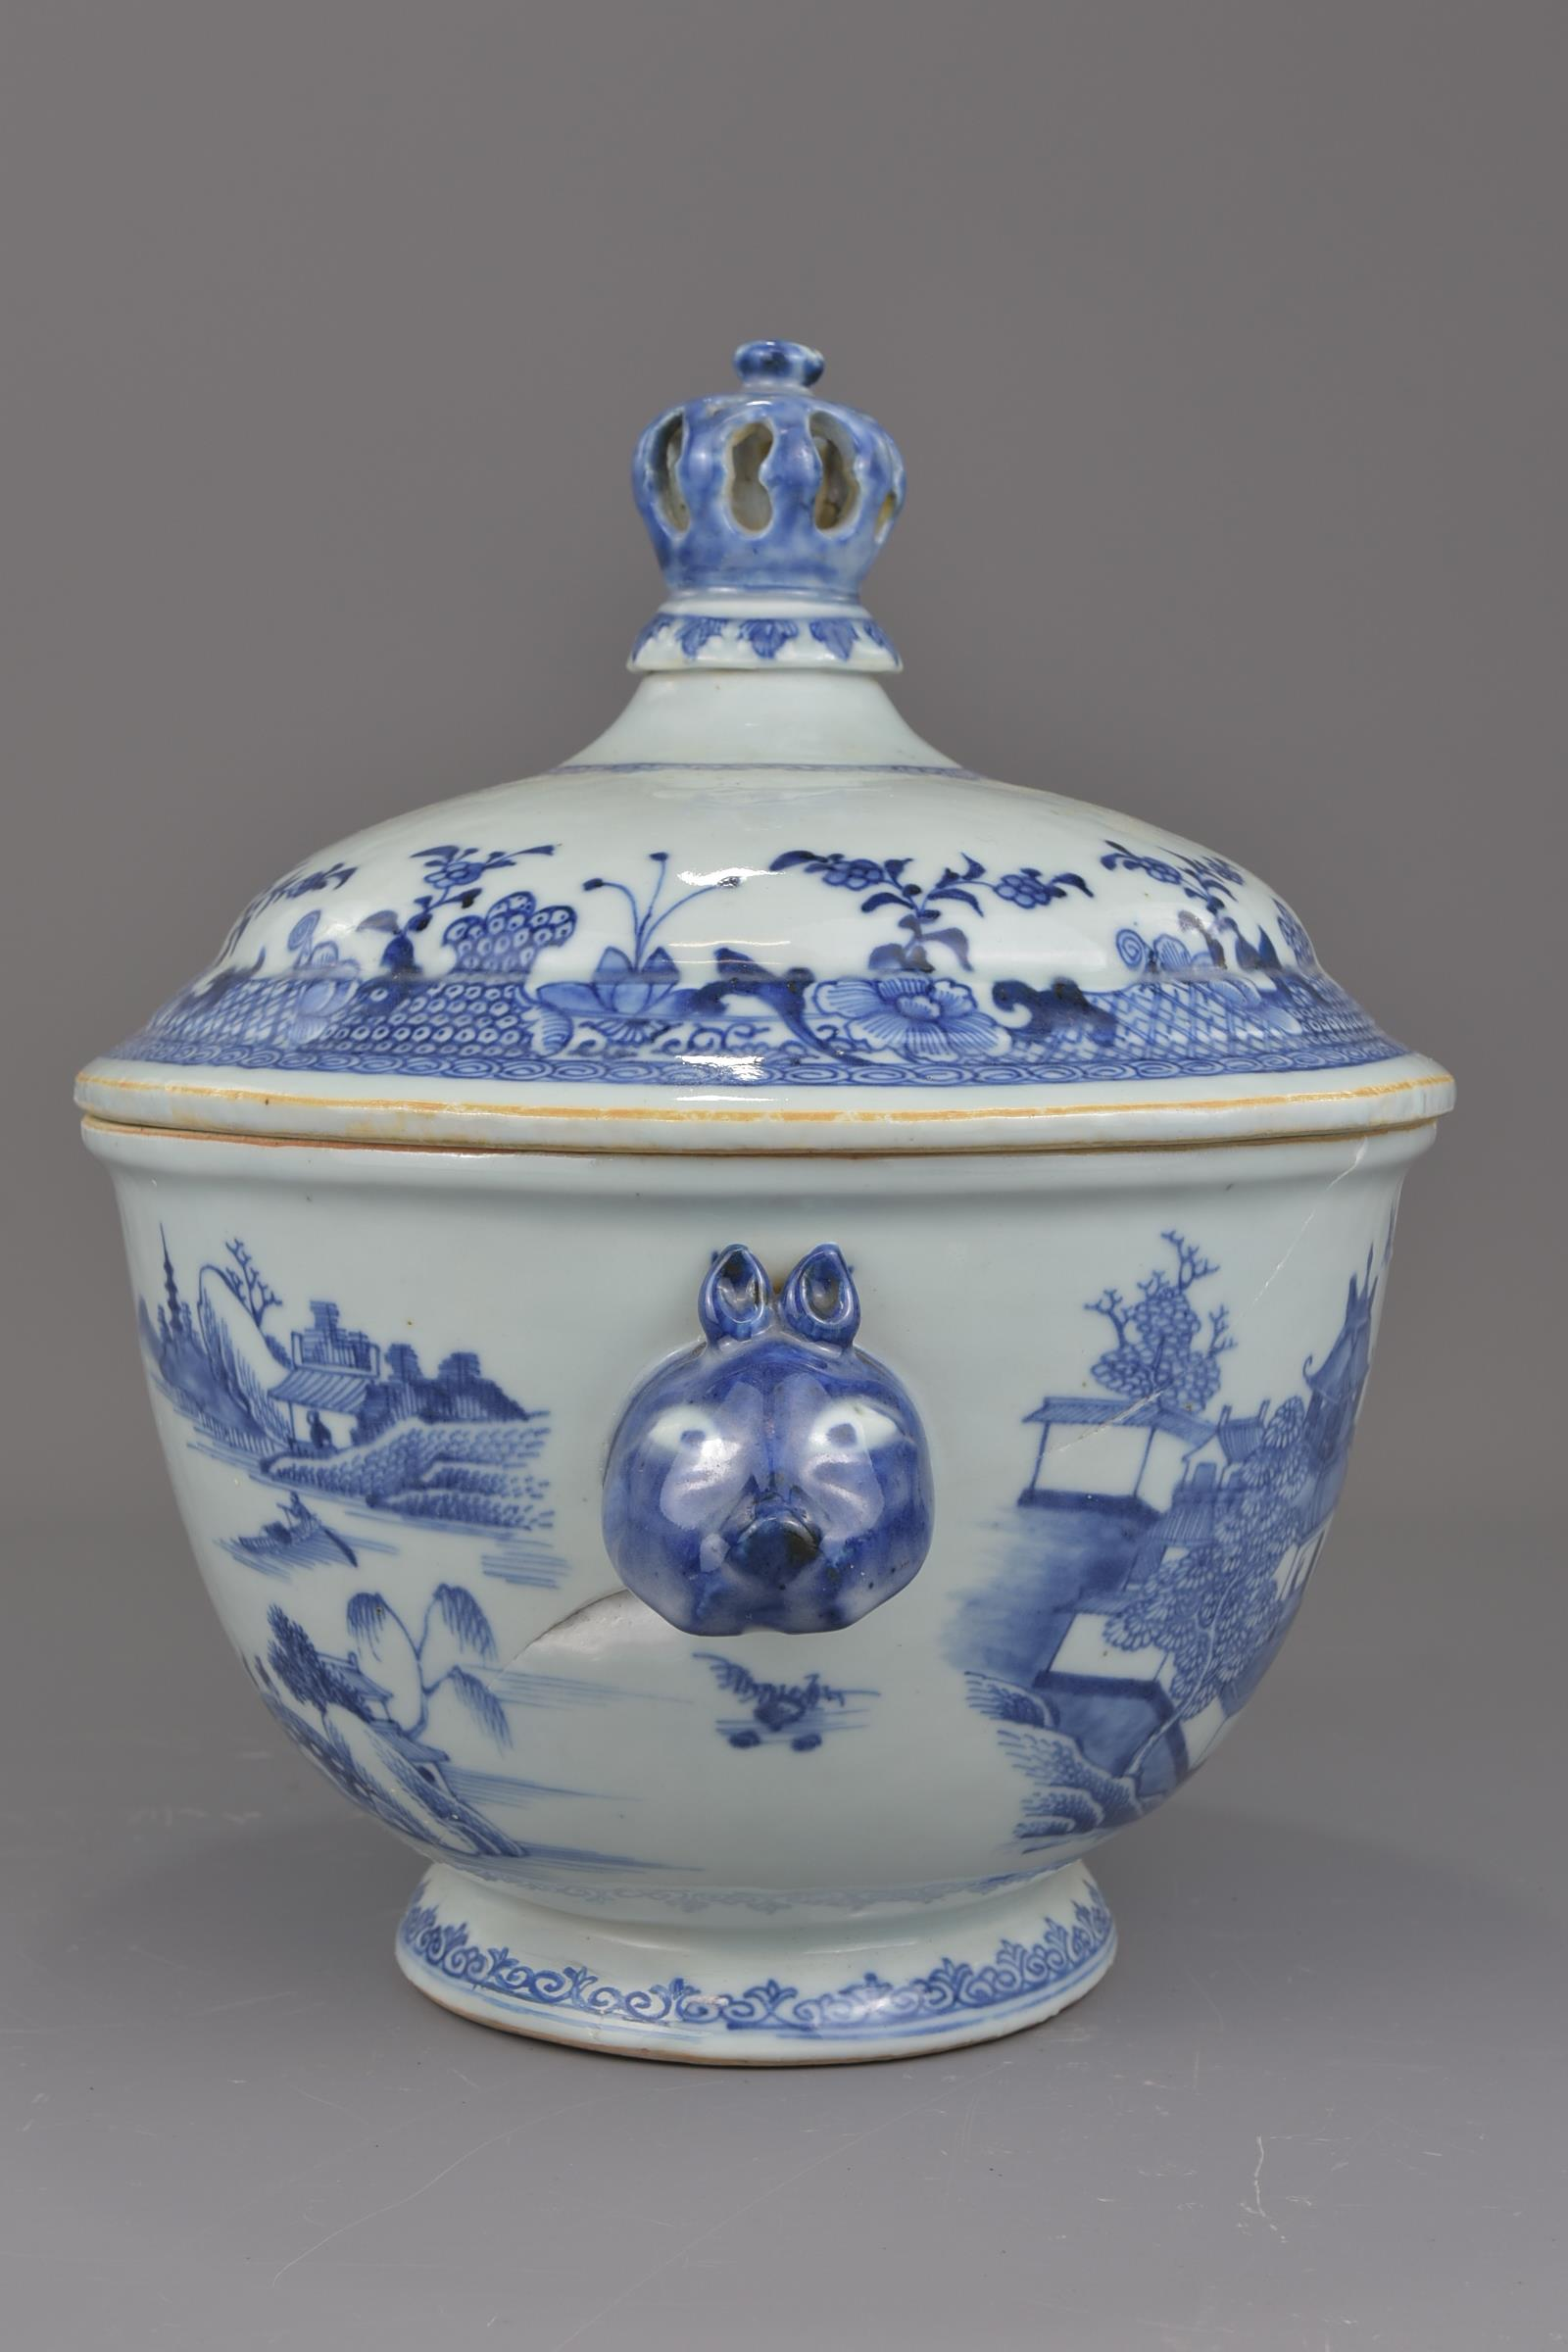 Lot 3 - A Chinese 18th century blue and white porcelain tureen with cover together with a large 18th century